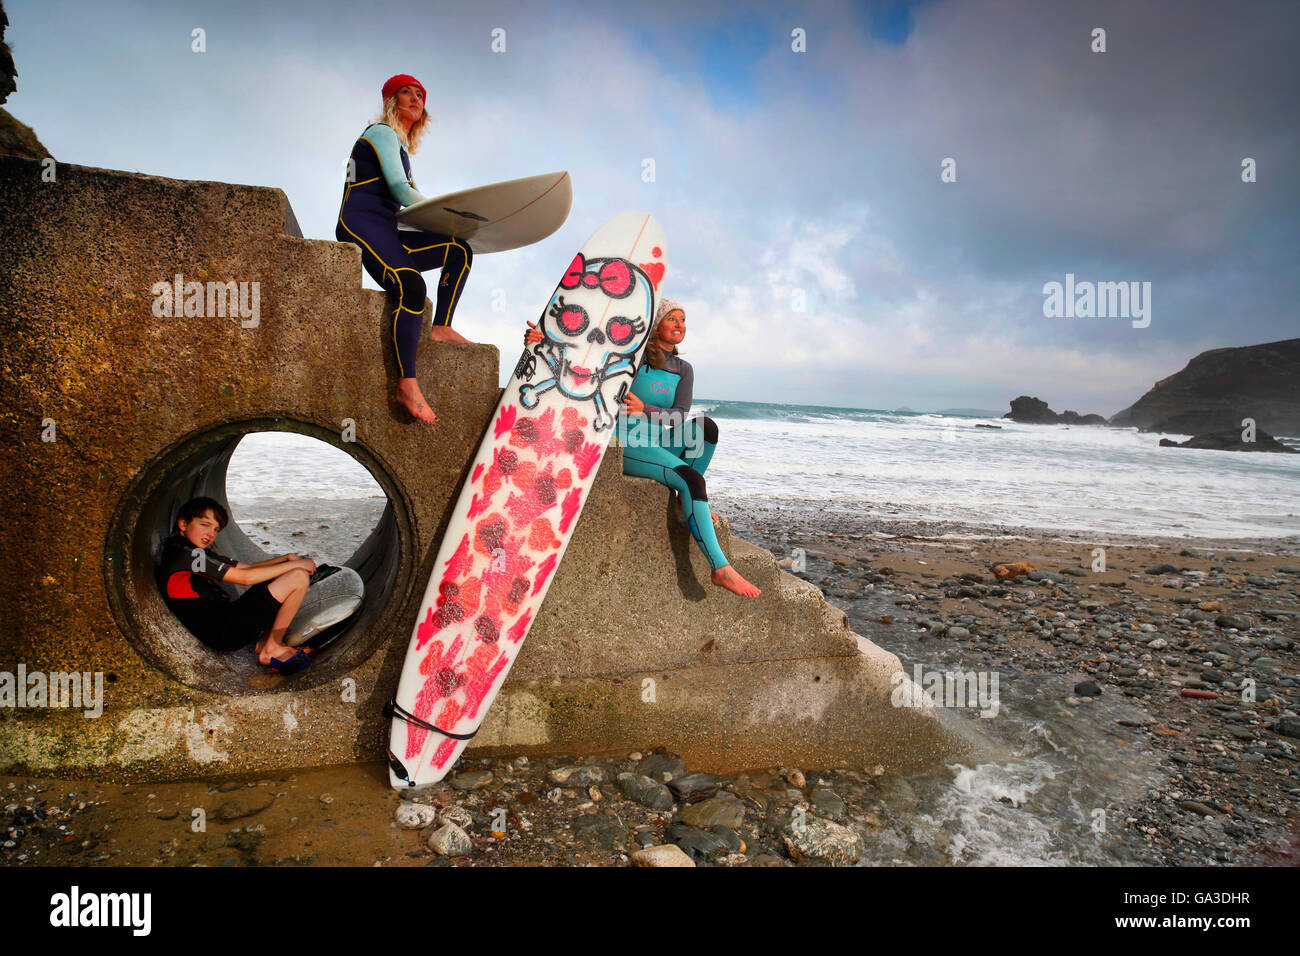 Surfers on Trevaunance Cove at St. Agnes, Cornwall. EDITORIAL USE ONLY. - Stock Image